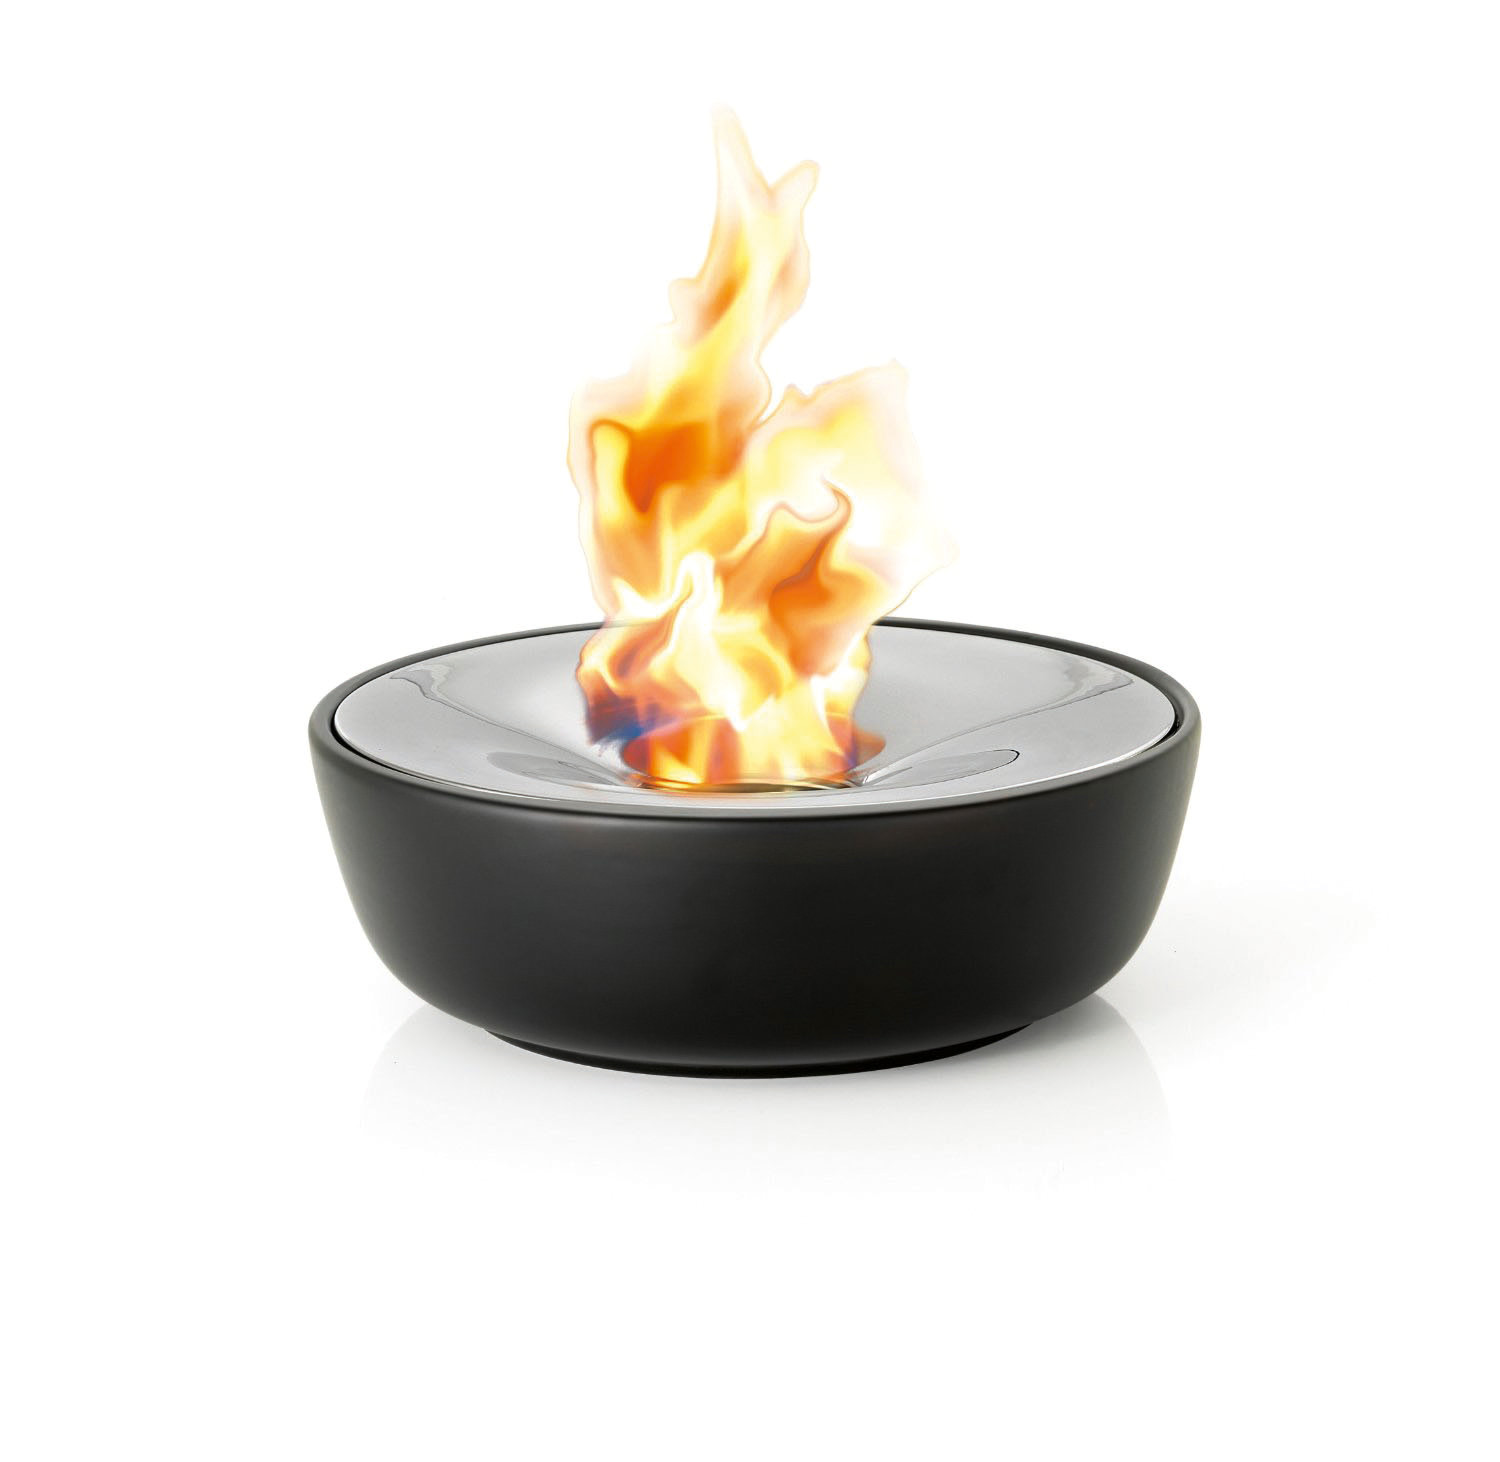 The Fuoco ceramic-bowl tabletop fire pit from Blomus www.blomus.com.au